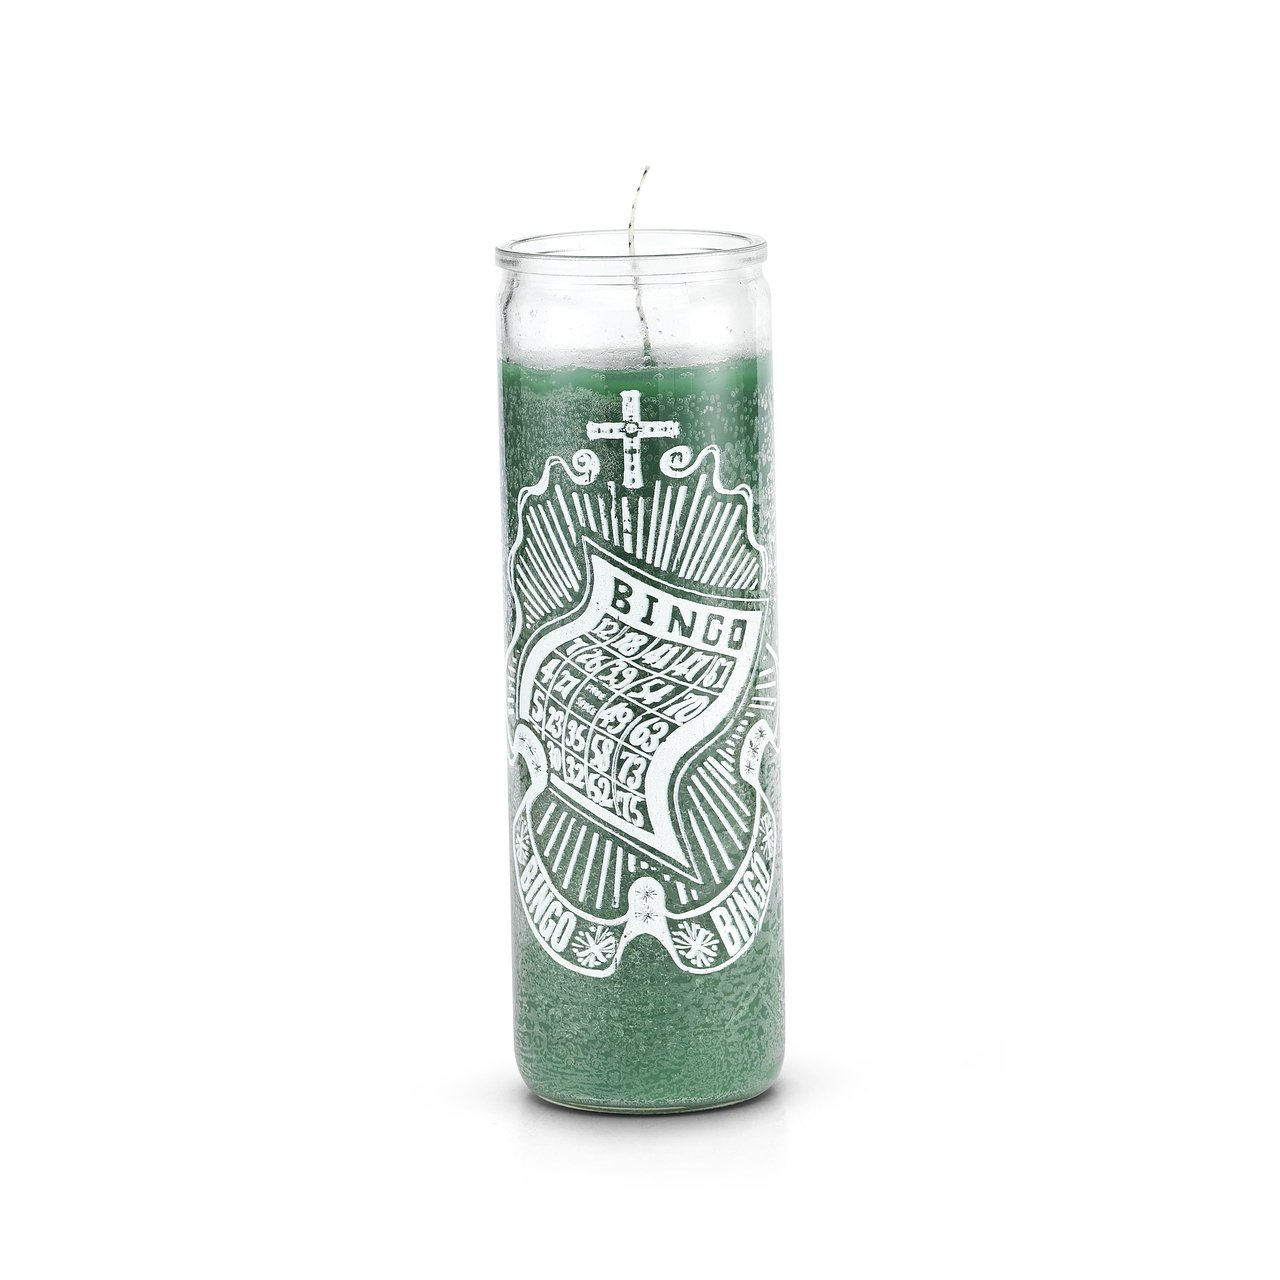 Bingo 7 Day 1 Color Prayer Candle by The Original Candle Company